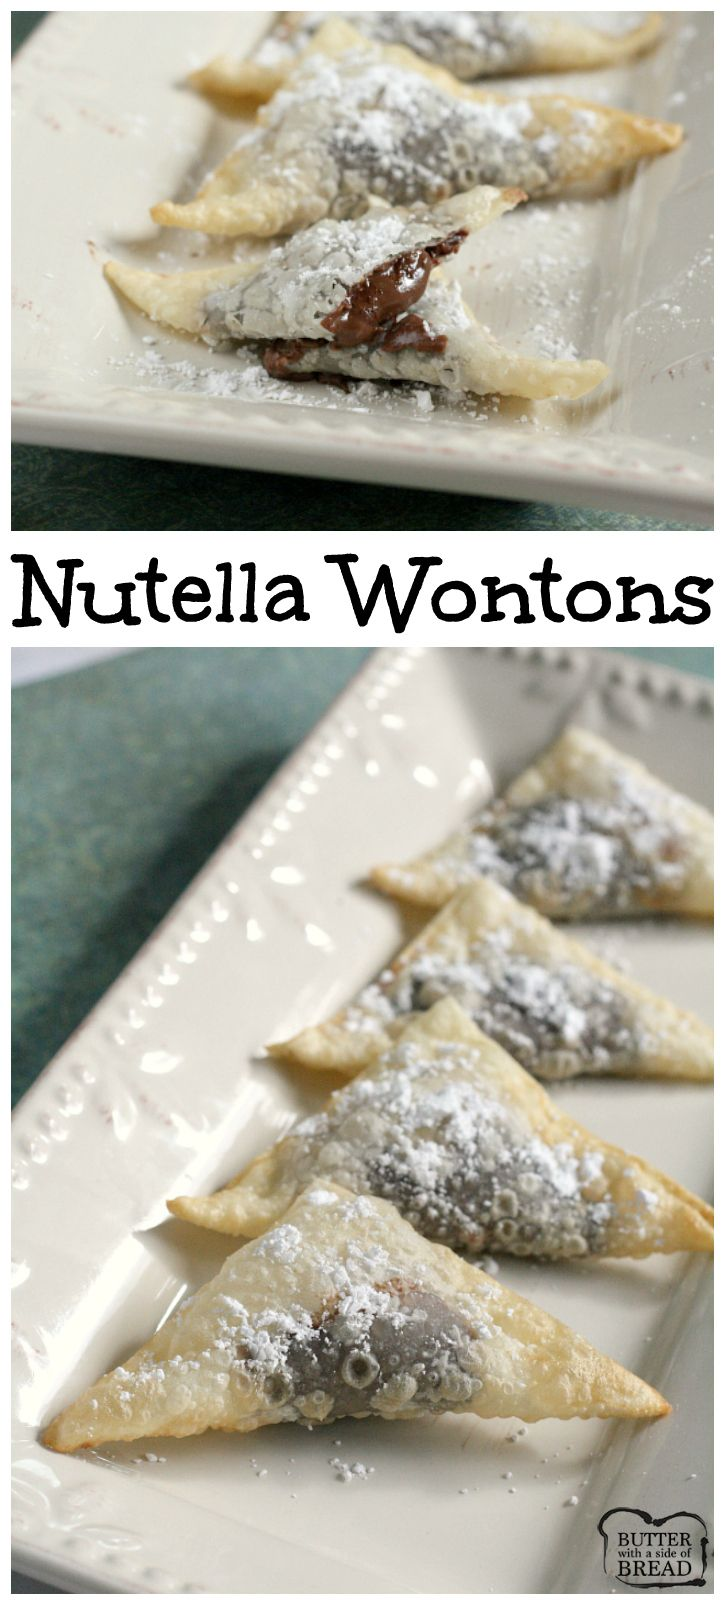 Nutella Wontons - these take just a few minutes to make & literally melt in your mouth! Delicious dessert recipe from Butter With a Side of Bread